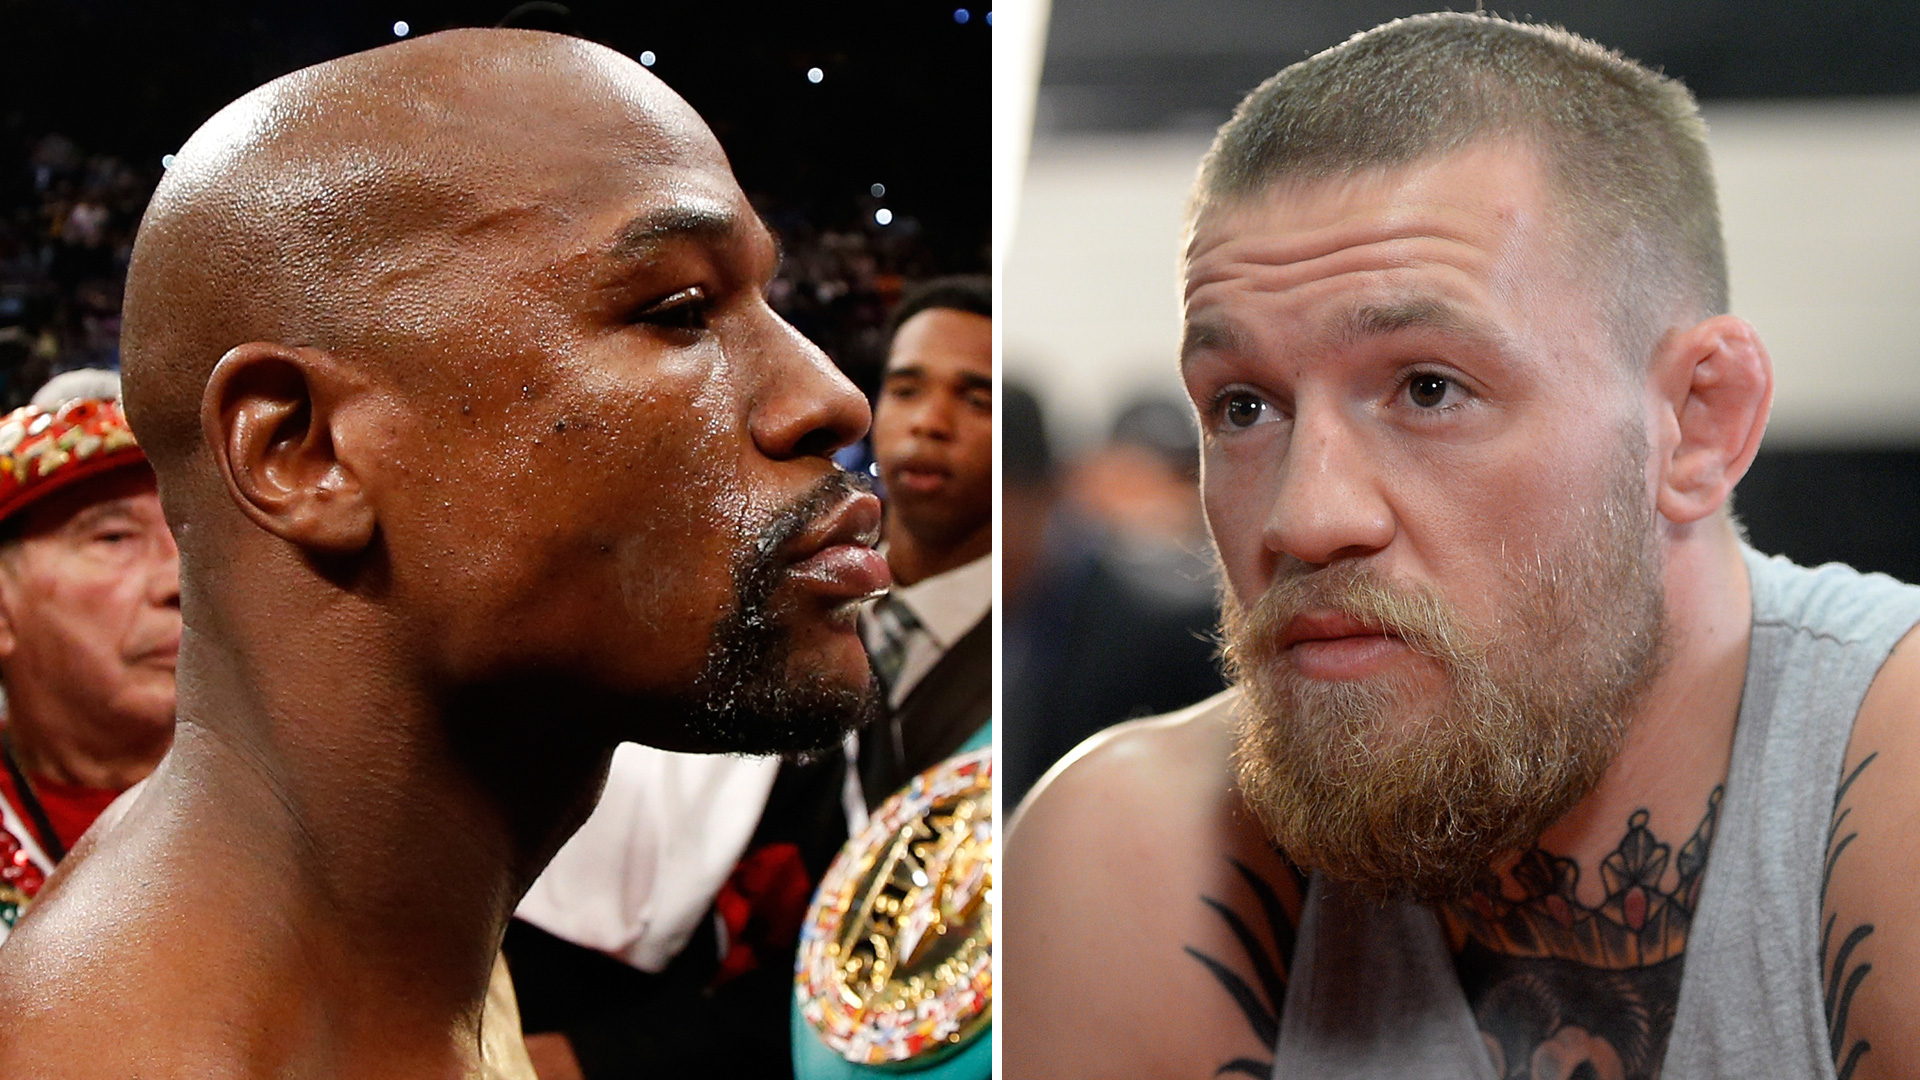 http://images.performgroup.com/di/library/sporting_news/e0/fa/split-floyd-mayweather-conor-mcgregor-051116-getty-ftrjpg_klkte98omfn61nz920zbb52mk.jpg?t=-1601853628